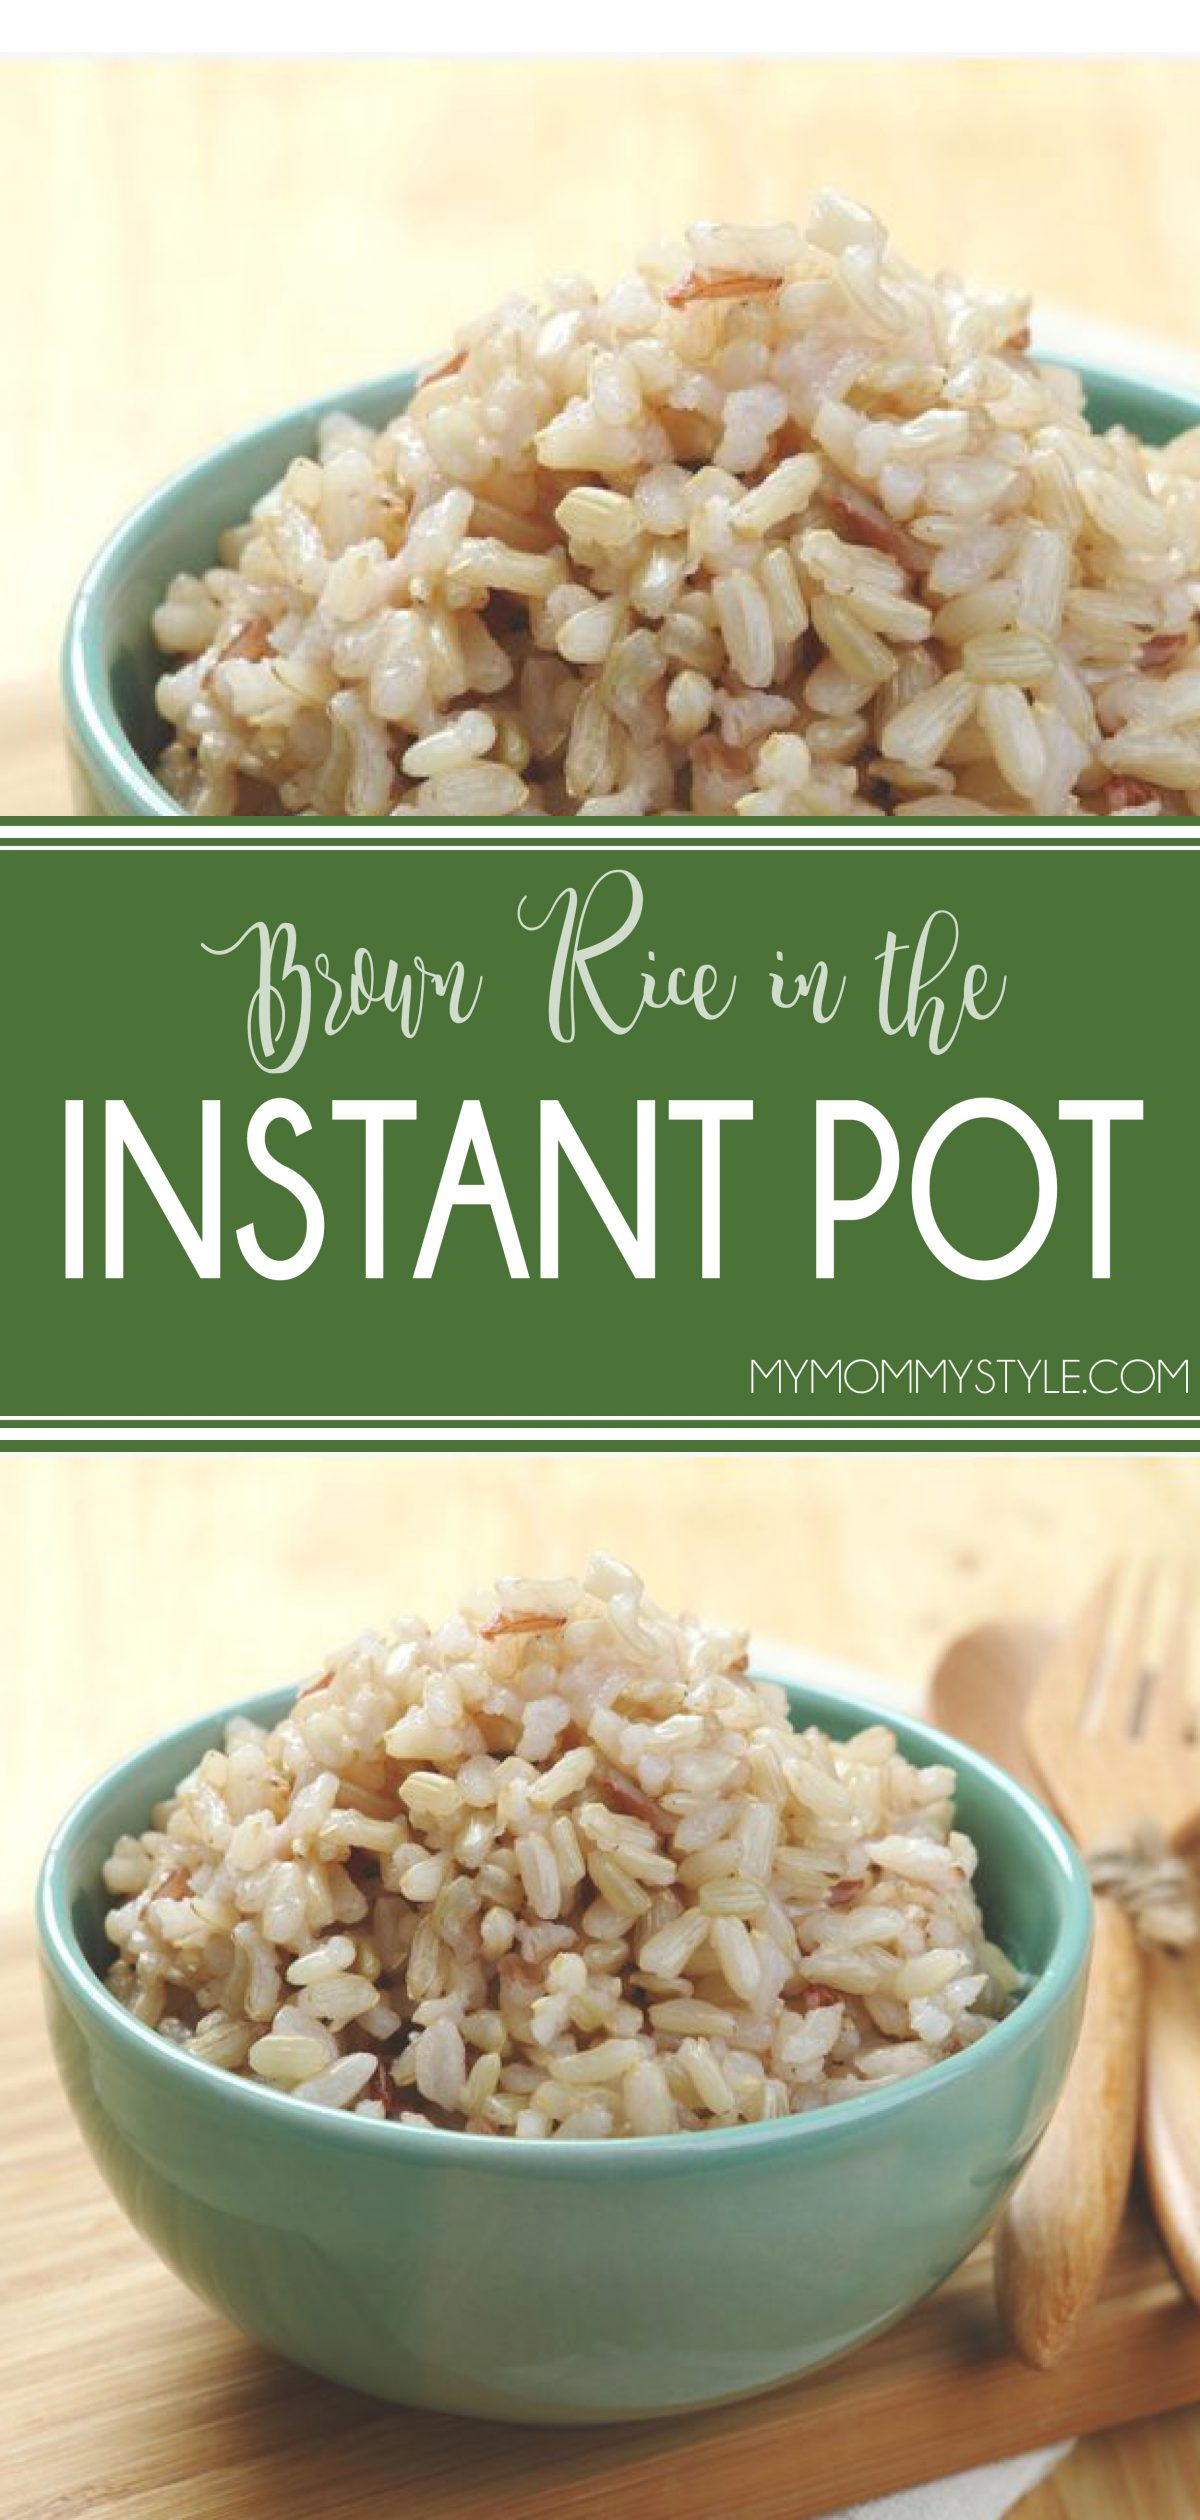 This Instant Pot brown rice recipe is so easy to make! It's much faster in the Instant Pot and the rice turns out perfectly cooked every time. No mushy rice here! via @mymommystyle